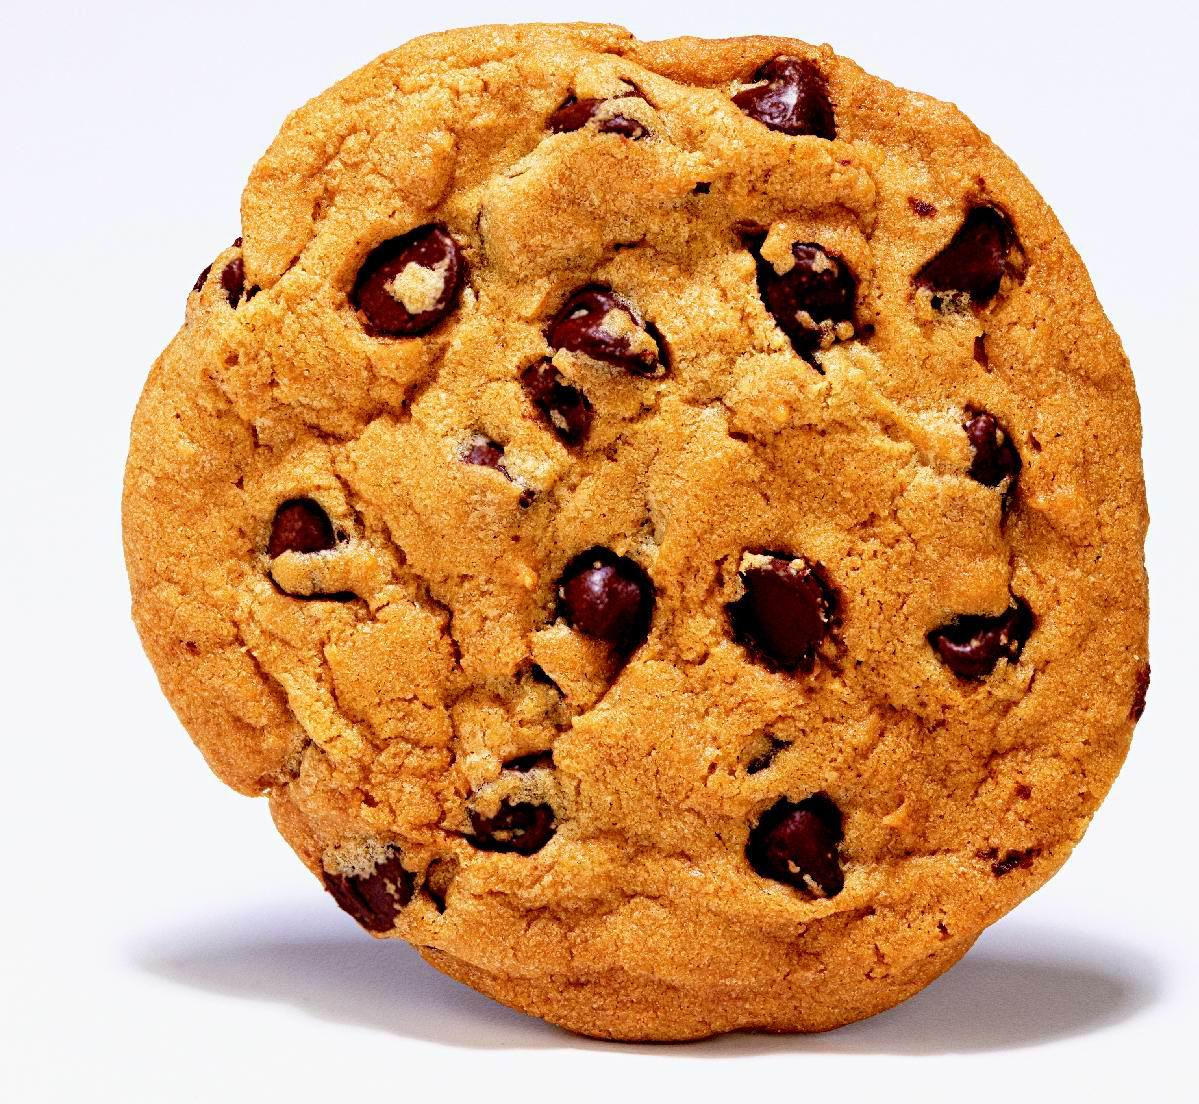 1277926533965176920chocolate_chip_cookie.png (1199×1104)